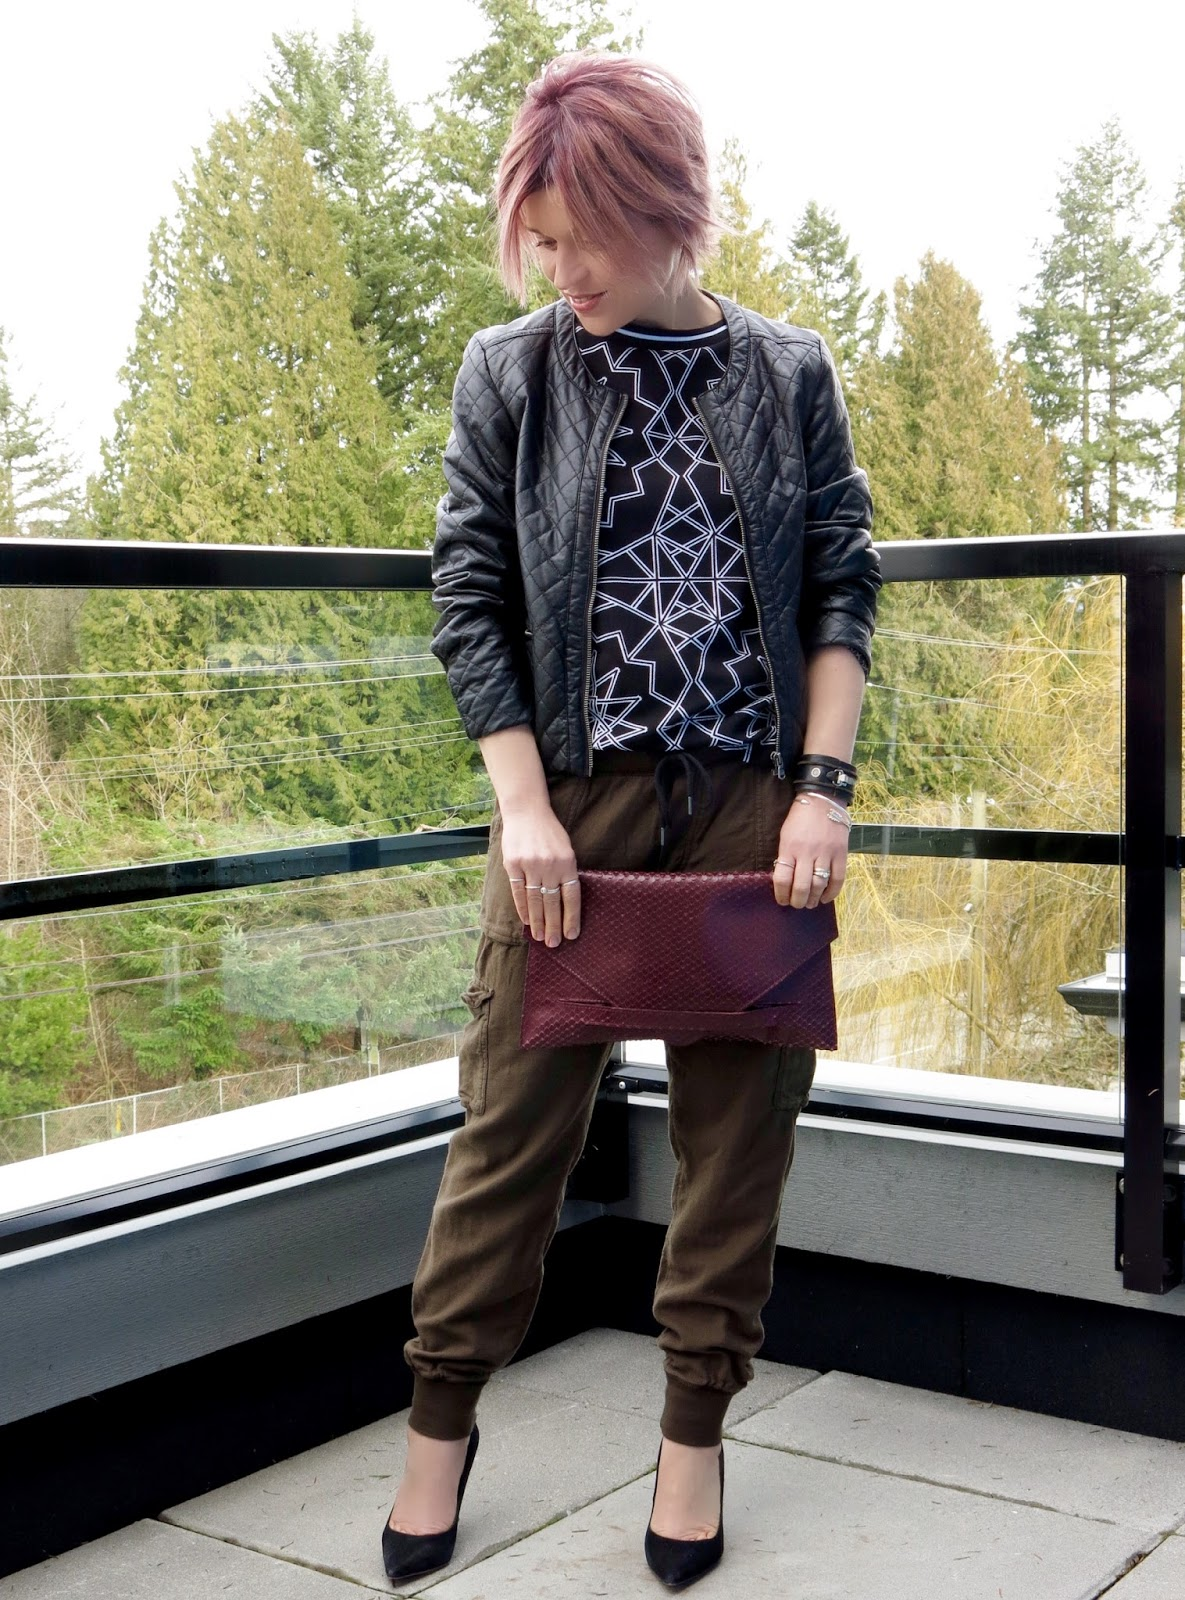 styling slouchy cargo pants with a patterned tee, quilted pleather jacket, and Sam Edelman pumps